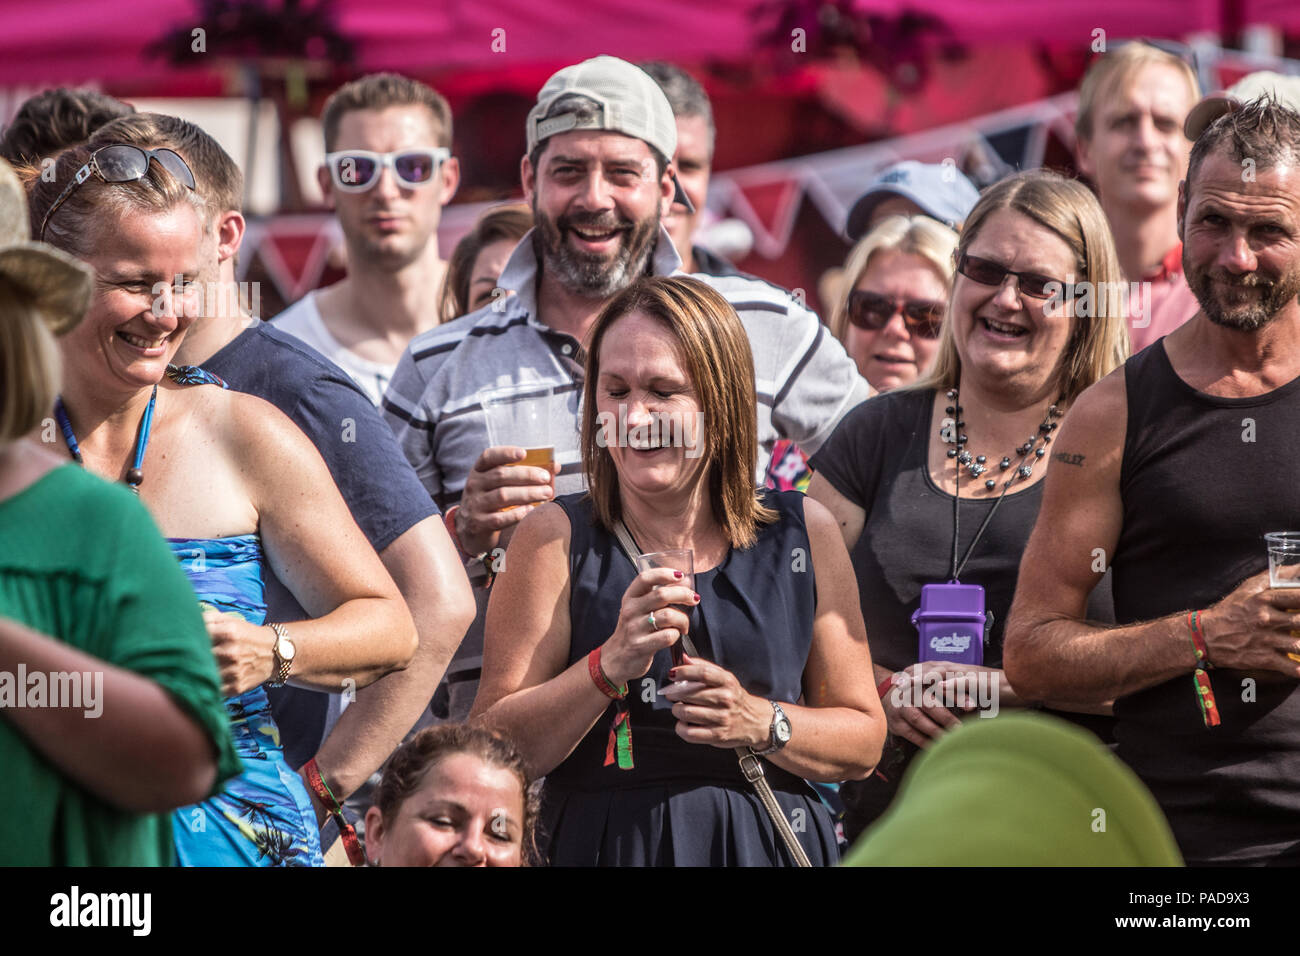 Kent, UK. 21st July, 2018. Kent, UK. 21 July 2018. Vicars Picnic - Music Festival Day 2 Performance  in Comedy tent - artist Stephen K Amos  Credit Glamourstock Credit: glamourstock/Alamy Live News Credit: glamourstock/Alamy Live News Stock Photo